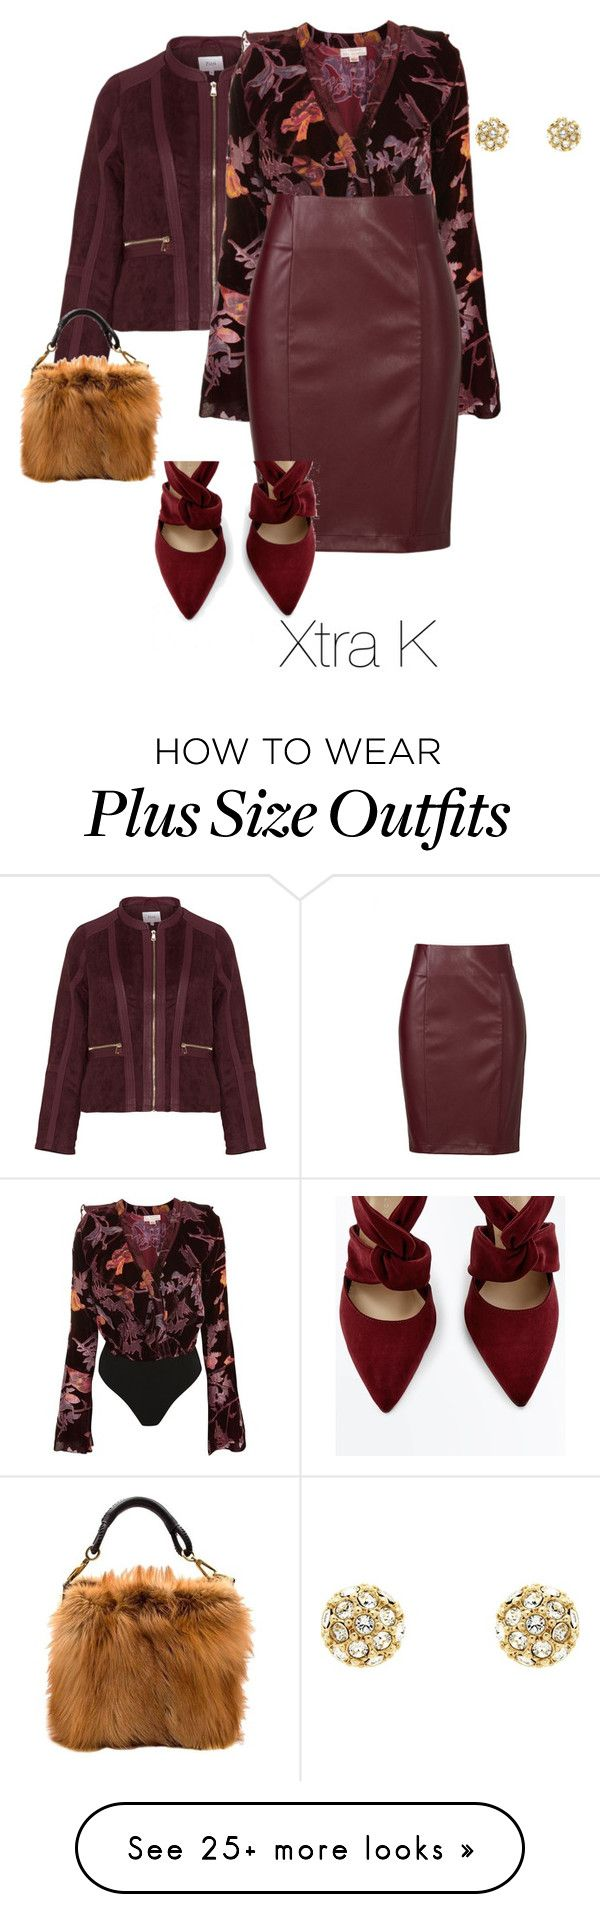 """Plus Lux"" by xtrak on Polyvore featuring Zizzi, Topshop, Christian Dior and Finesse"